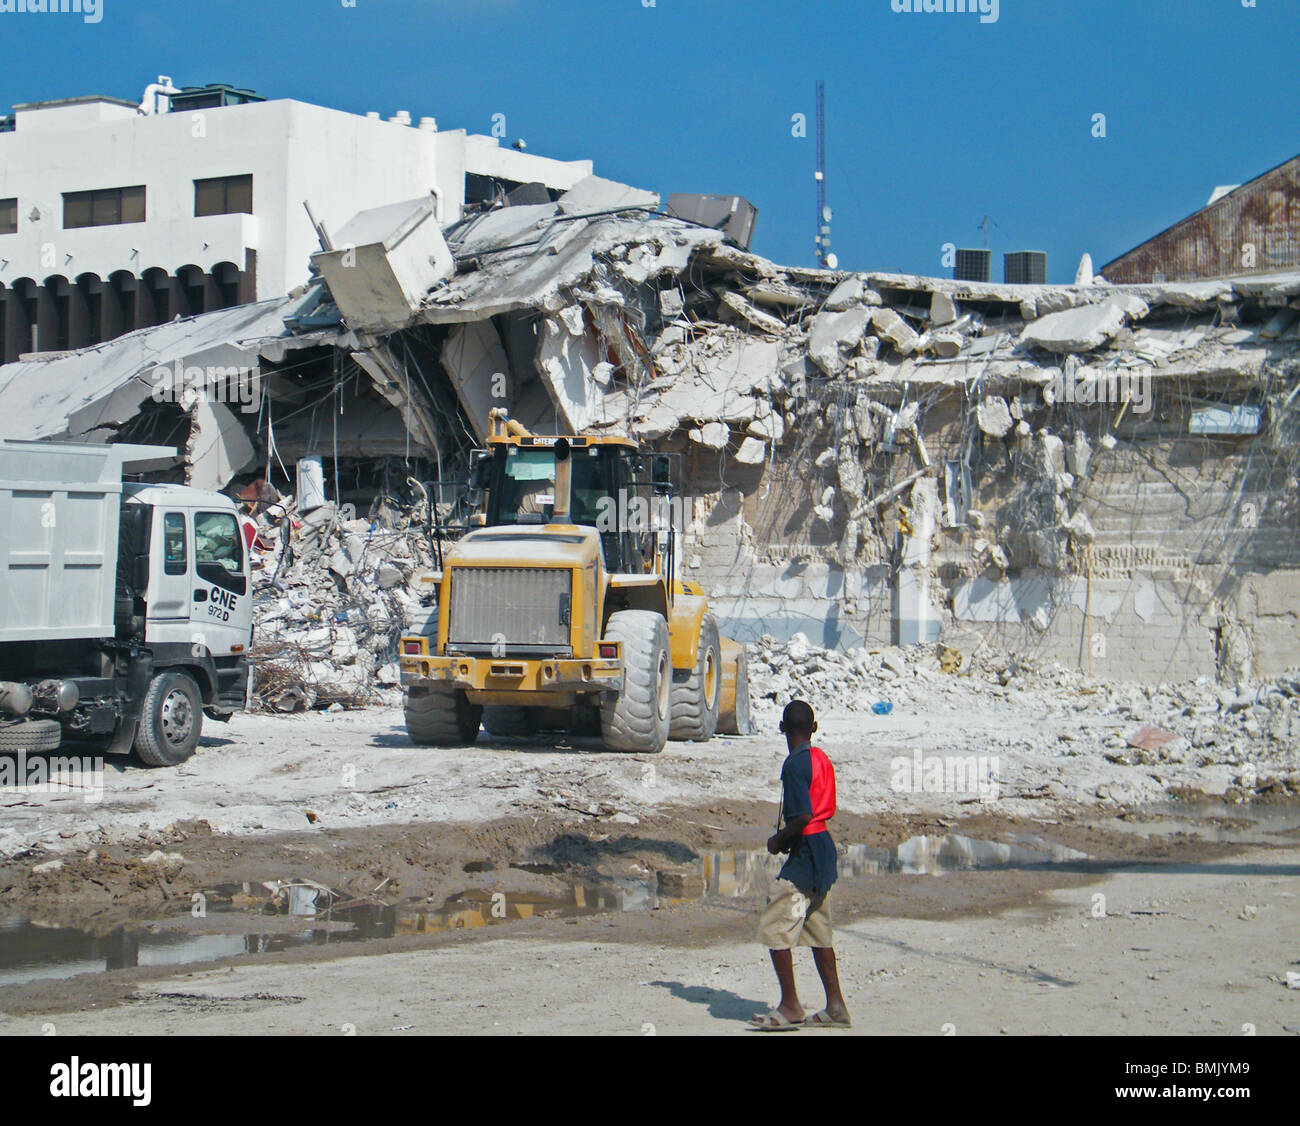 A young boy watches as diggers and trucks remove rubble from central Port au Prince after the Haiti earthquake - Stock Image